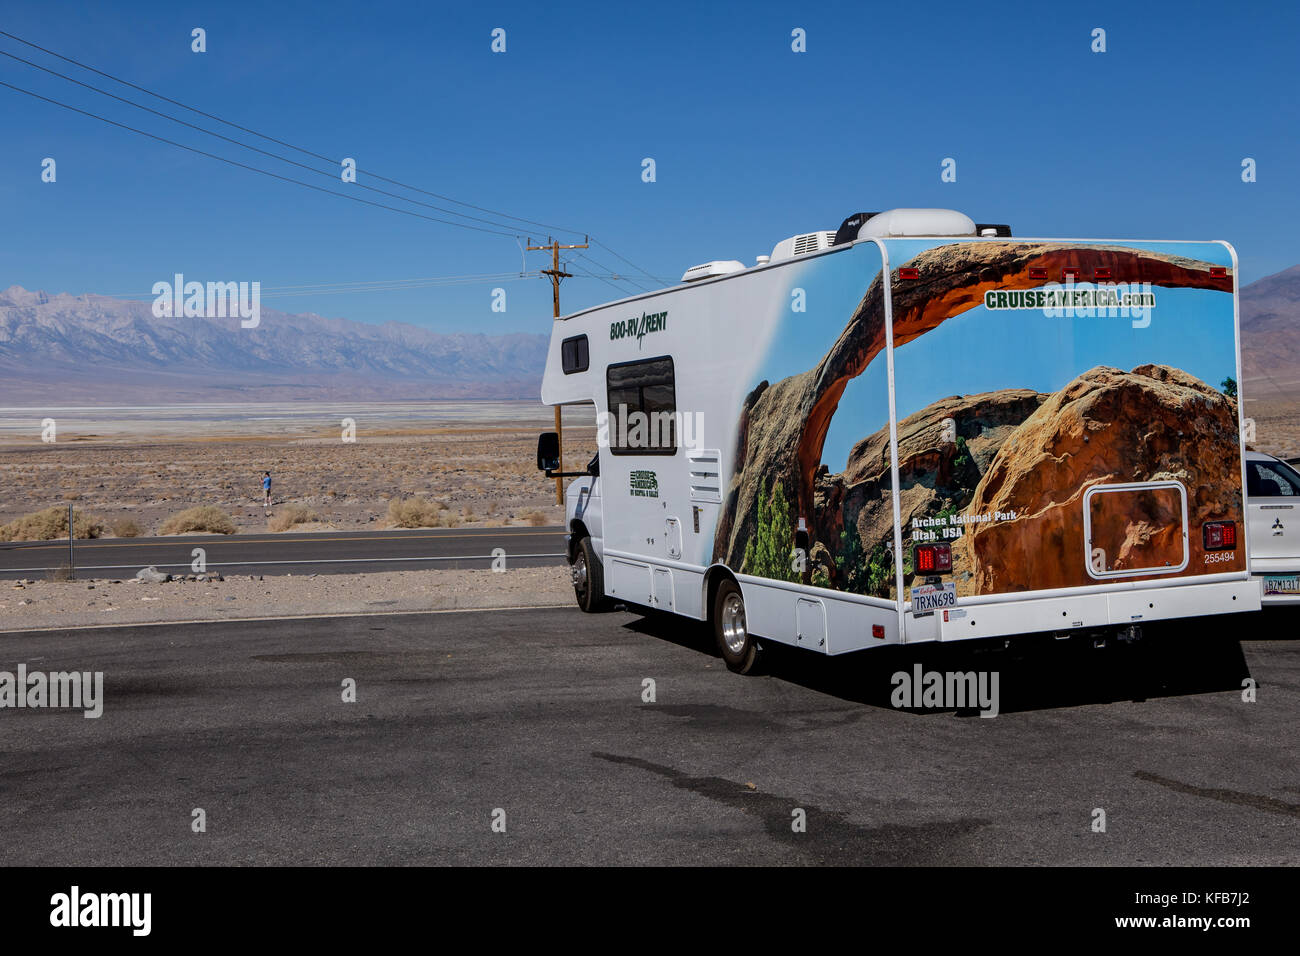 A rented RV motorhome at Owens lake on highway 190 Inyo county California USA - Stock Image